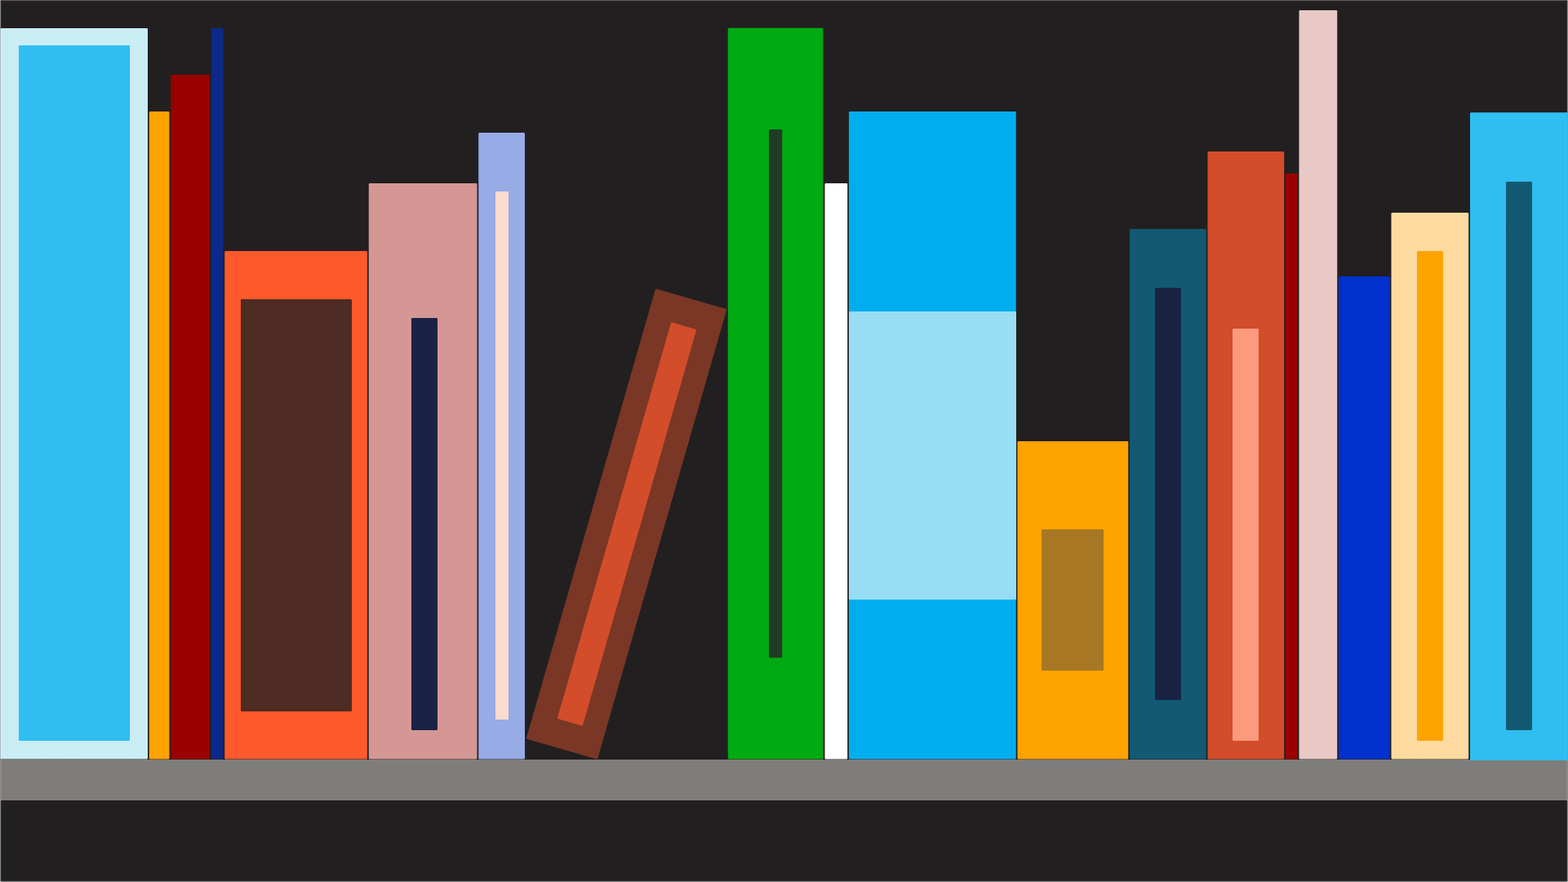 Illustration of a shelf with books on it